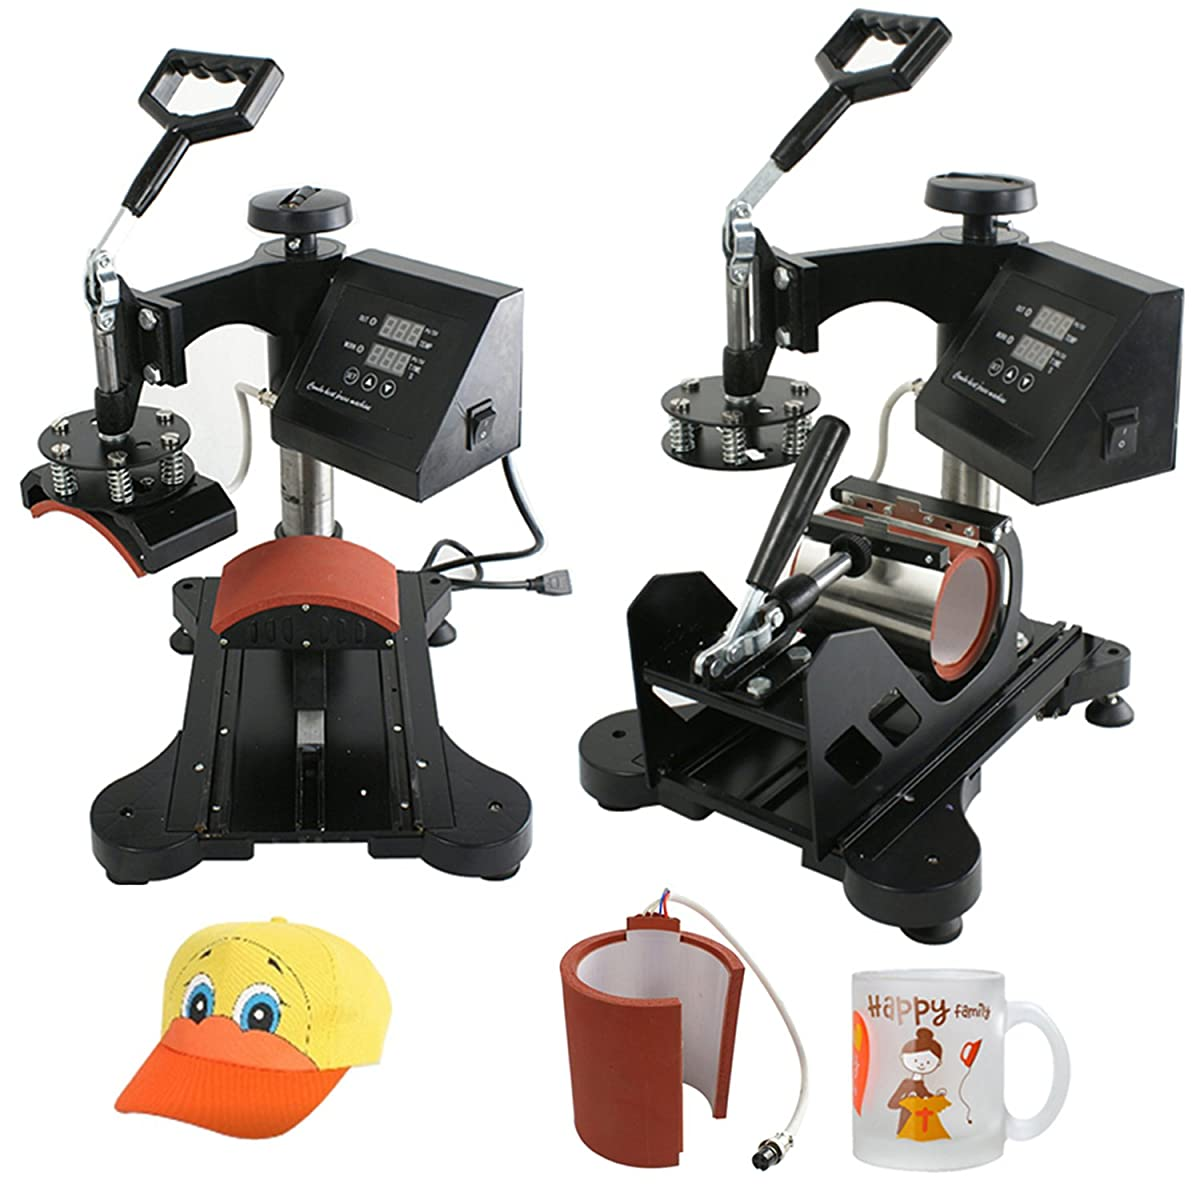 F2C Pro 5 in 1 Digital Transfer Sublimation Heat Press Machine Hat/Mug/Plate/Cap/T-shirt Multifunction New Black(5 in 1)